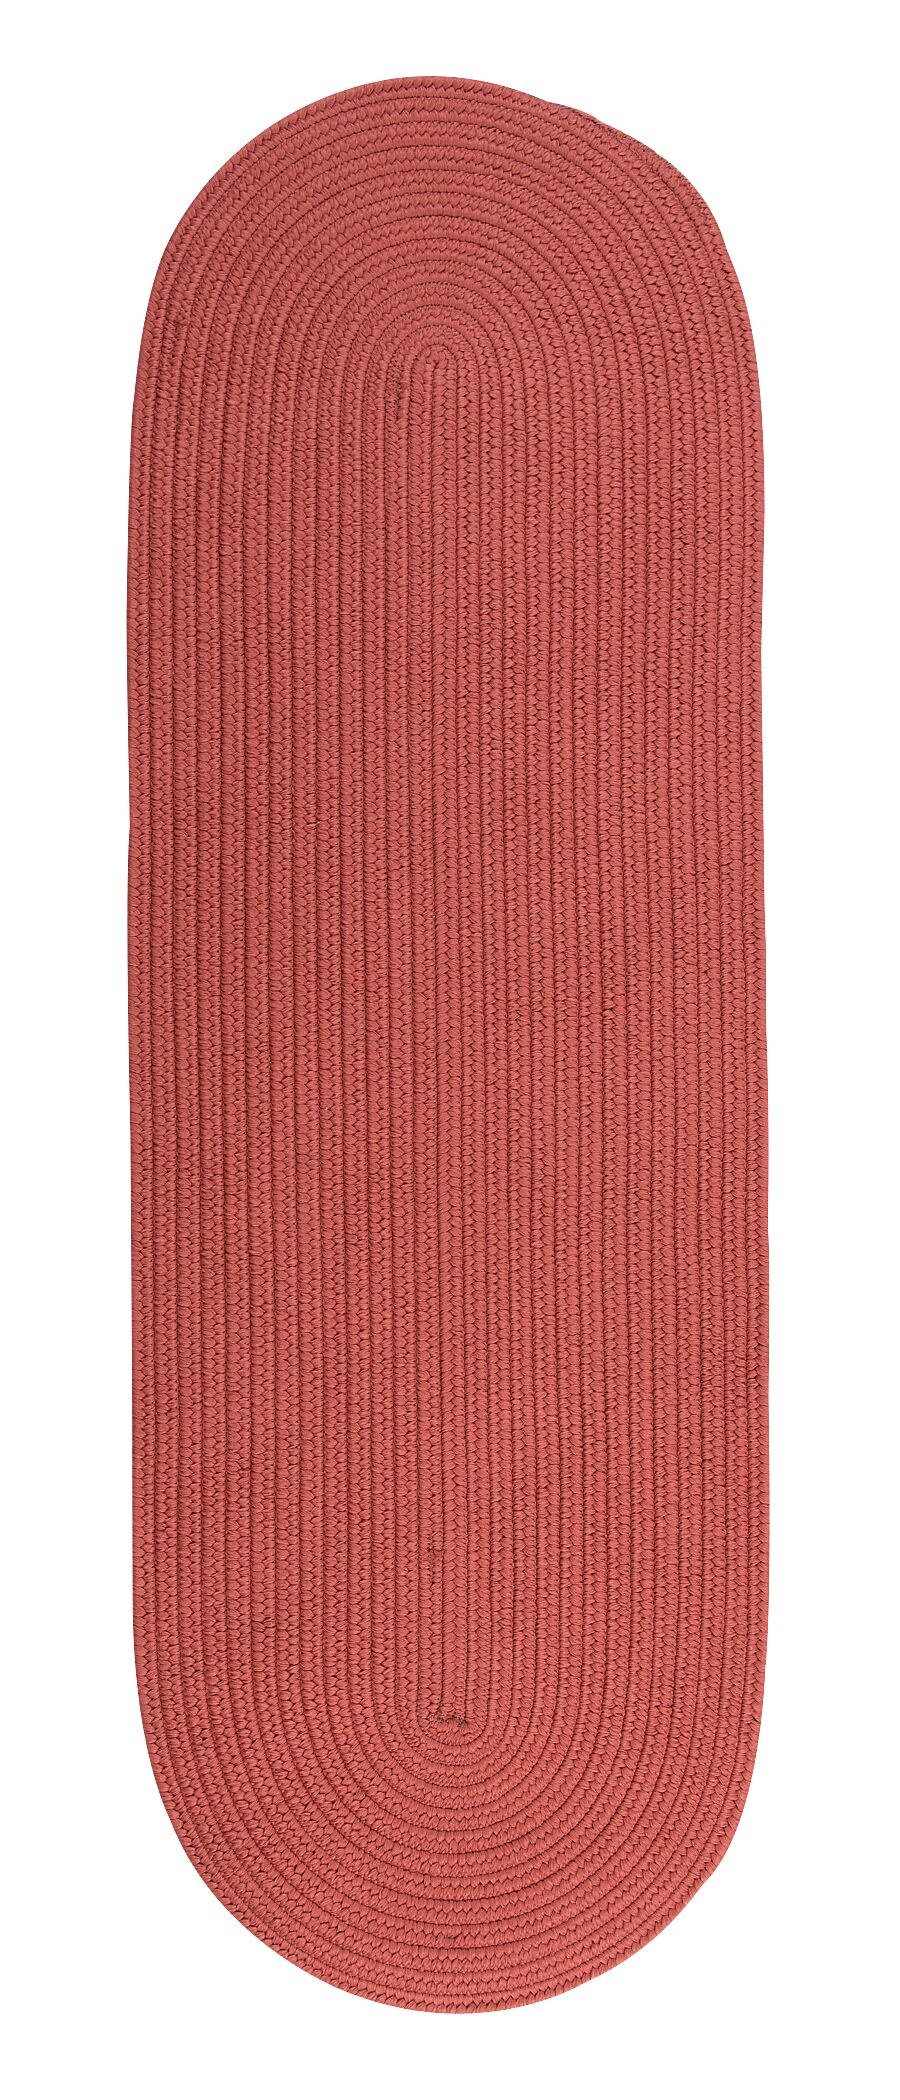 Westbourne Reversible Hand-Braided Red Indoor/Outdoor Area Rug Rug Size: Runner 2'4